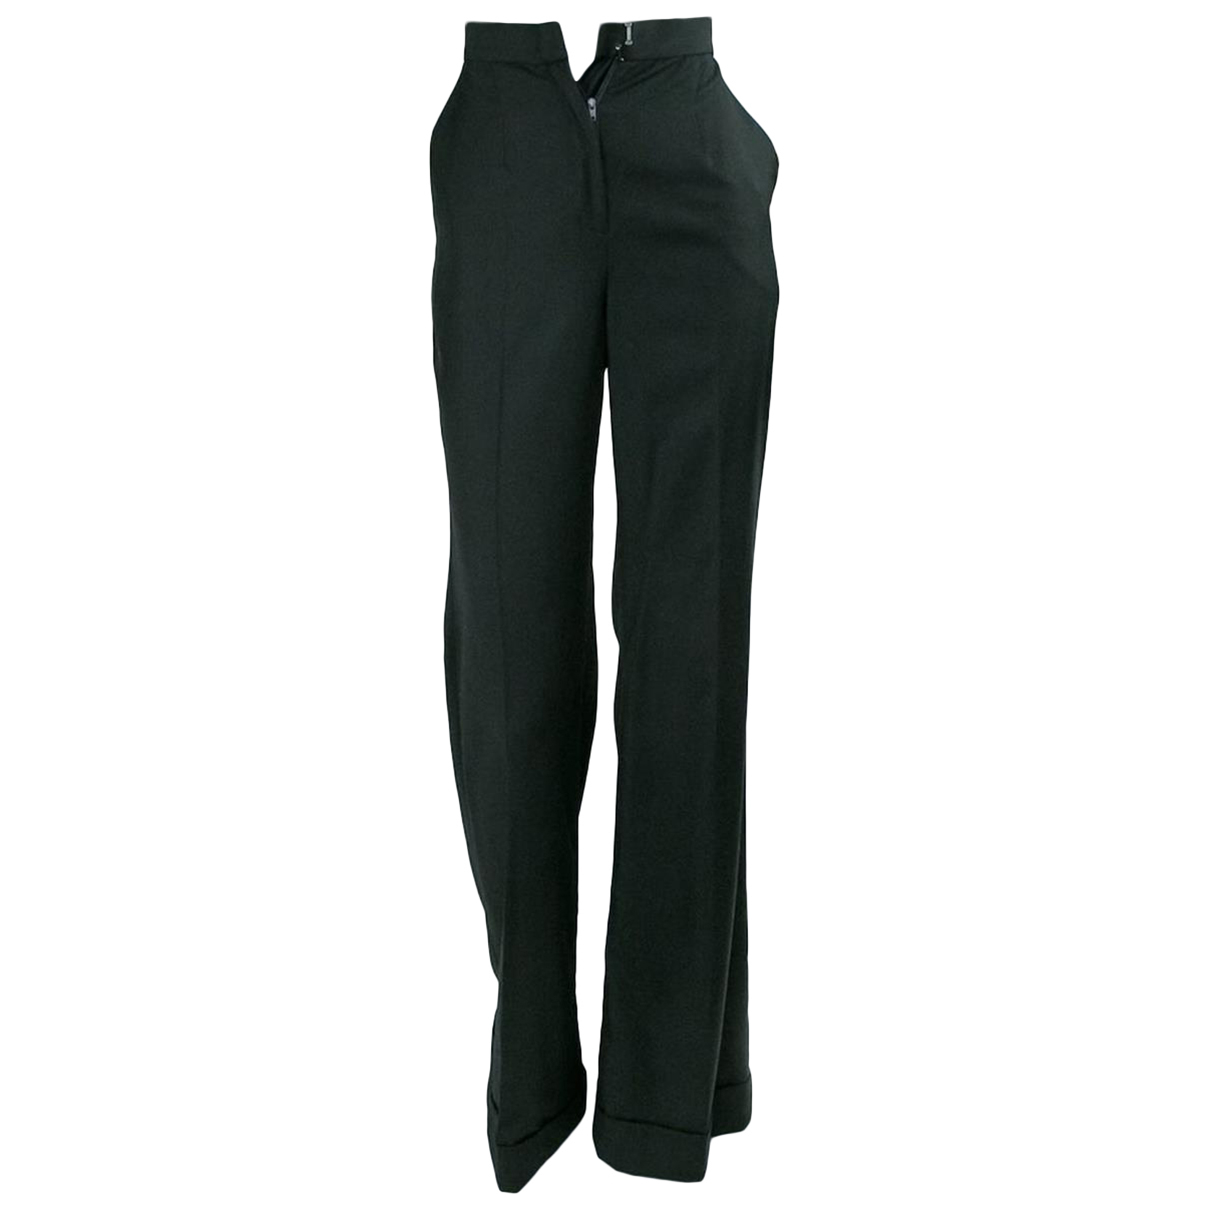 Ulyana Sergeenko N Black Trousers for Women XS International